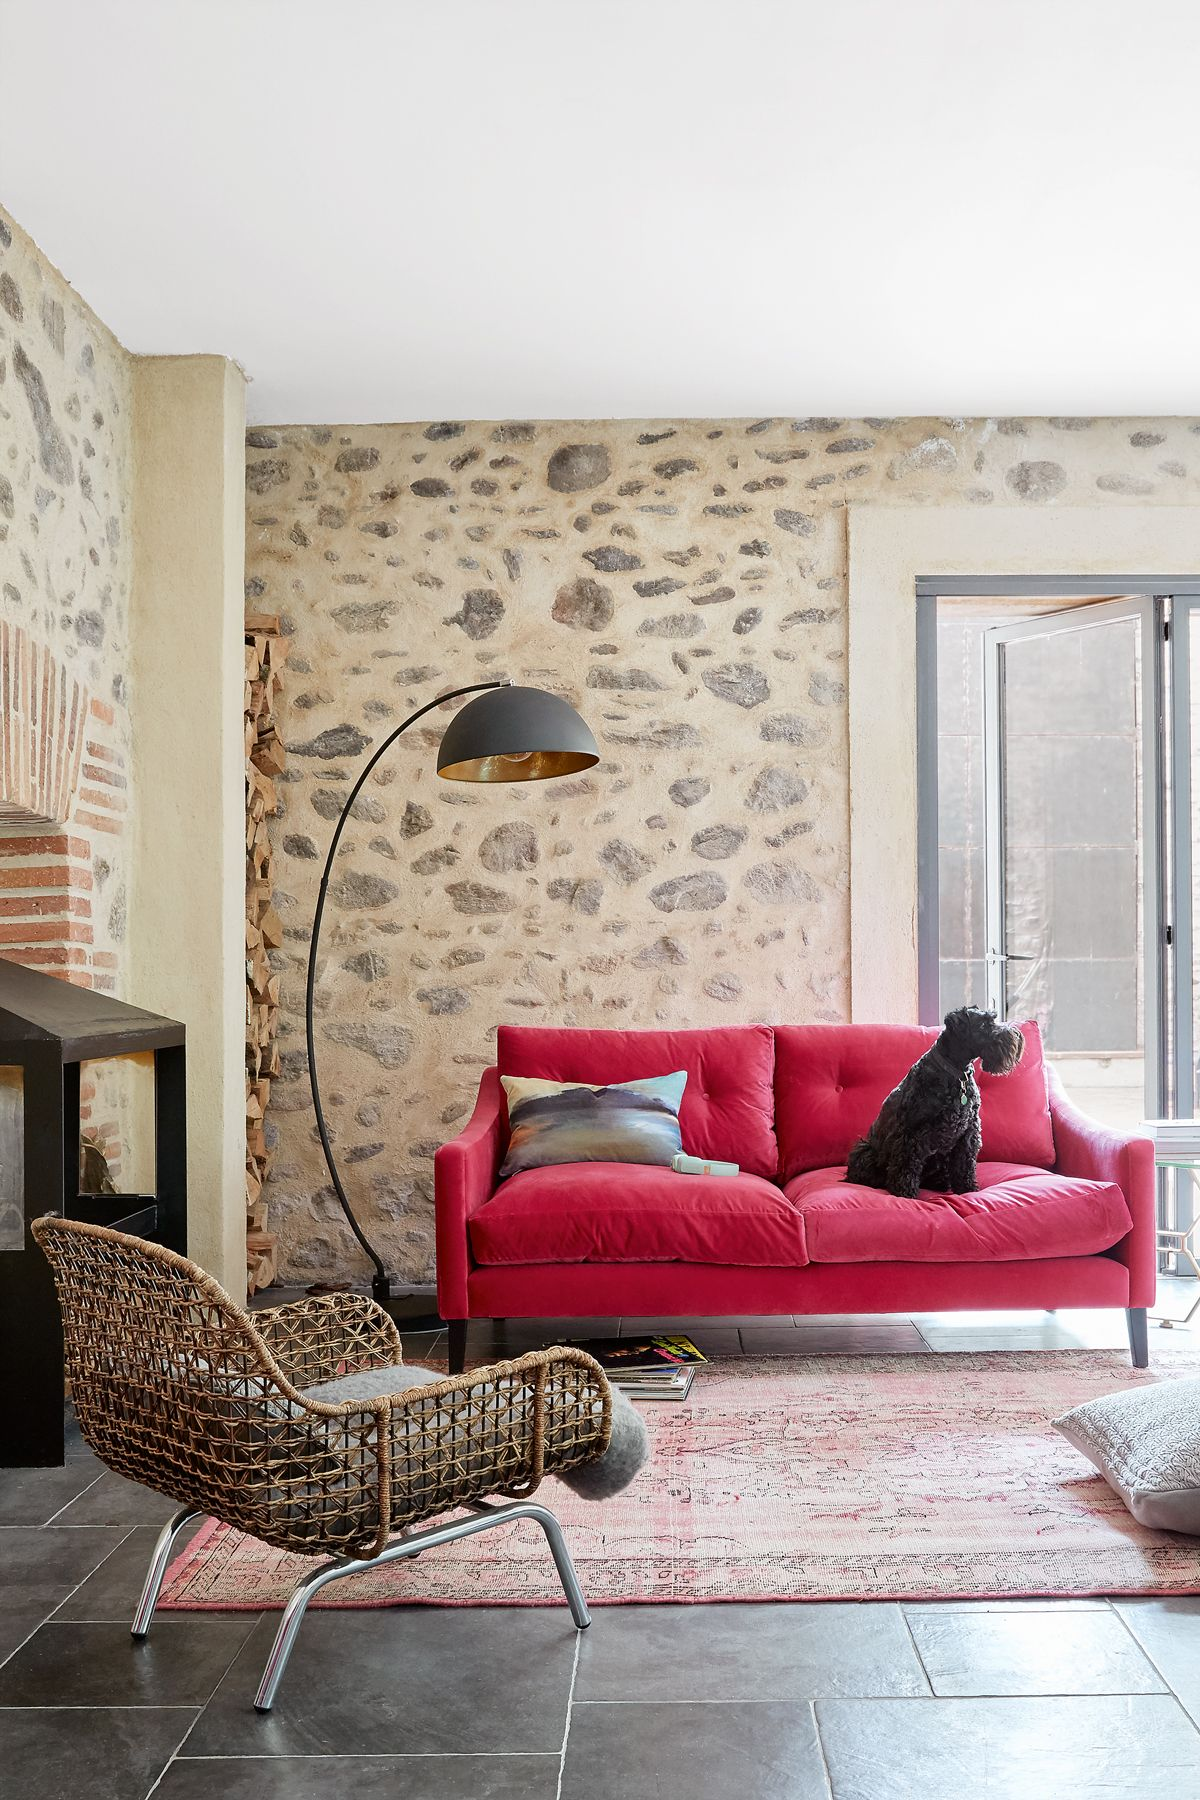 Step Inside This Traditional 18th Century French Farmhouse